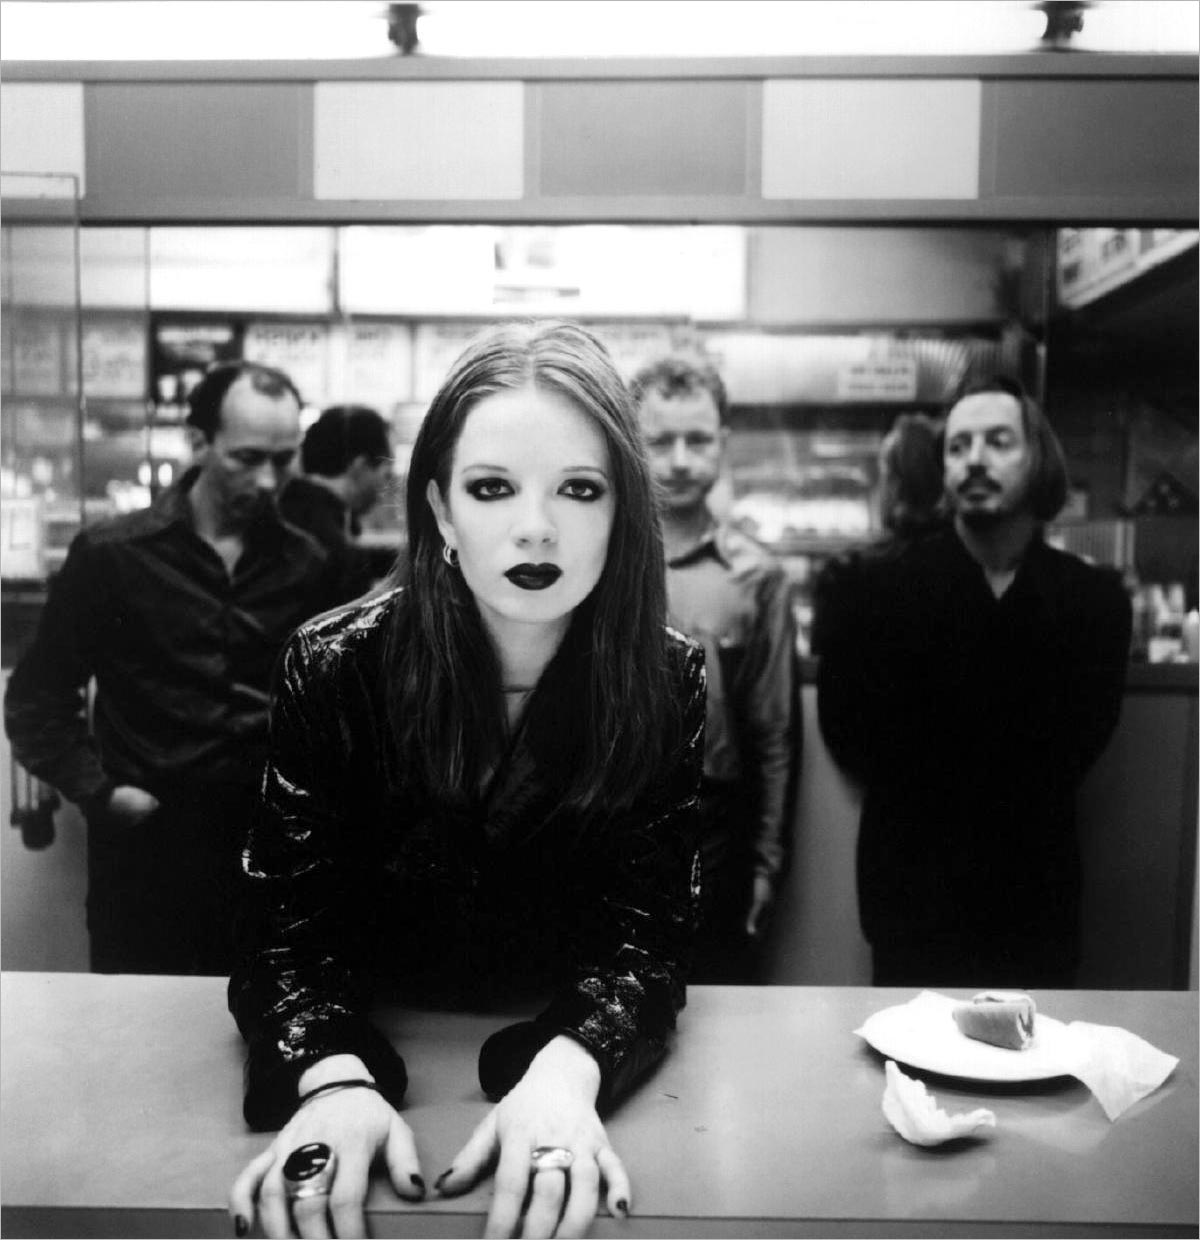 Garbage in 1995